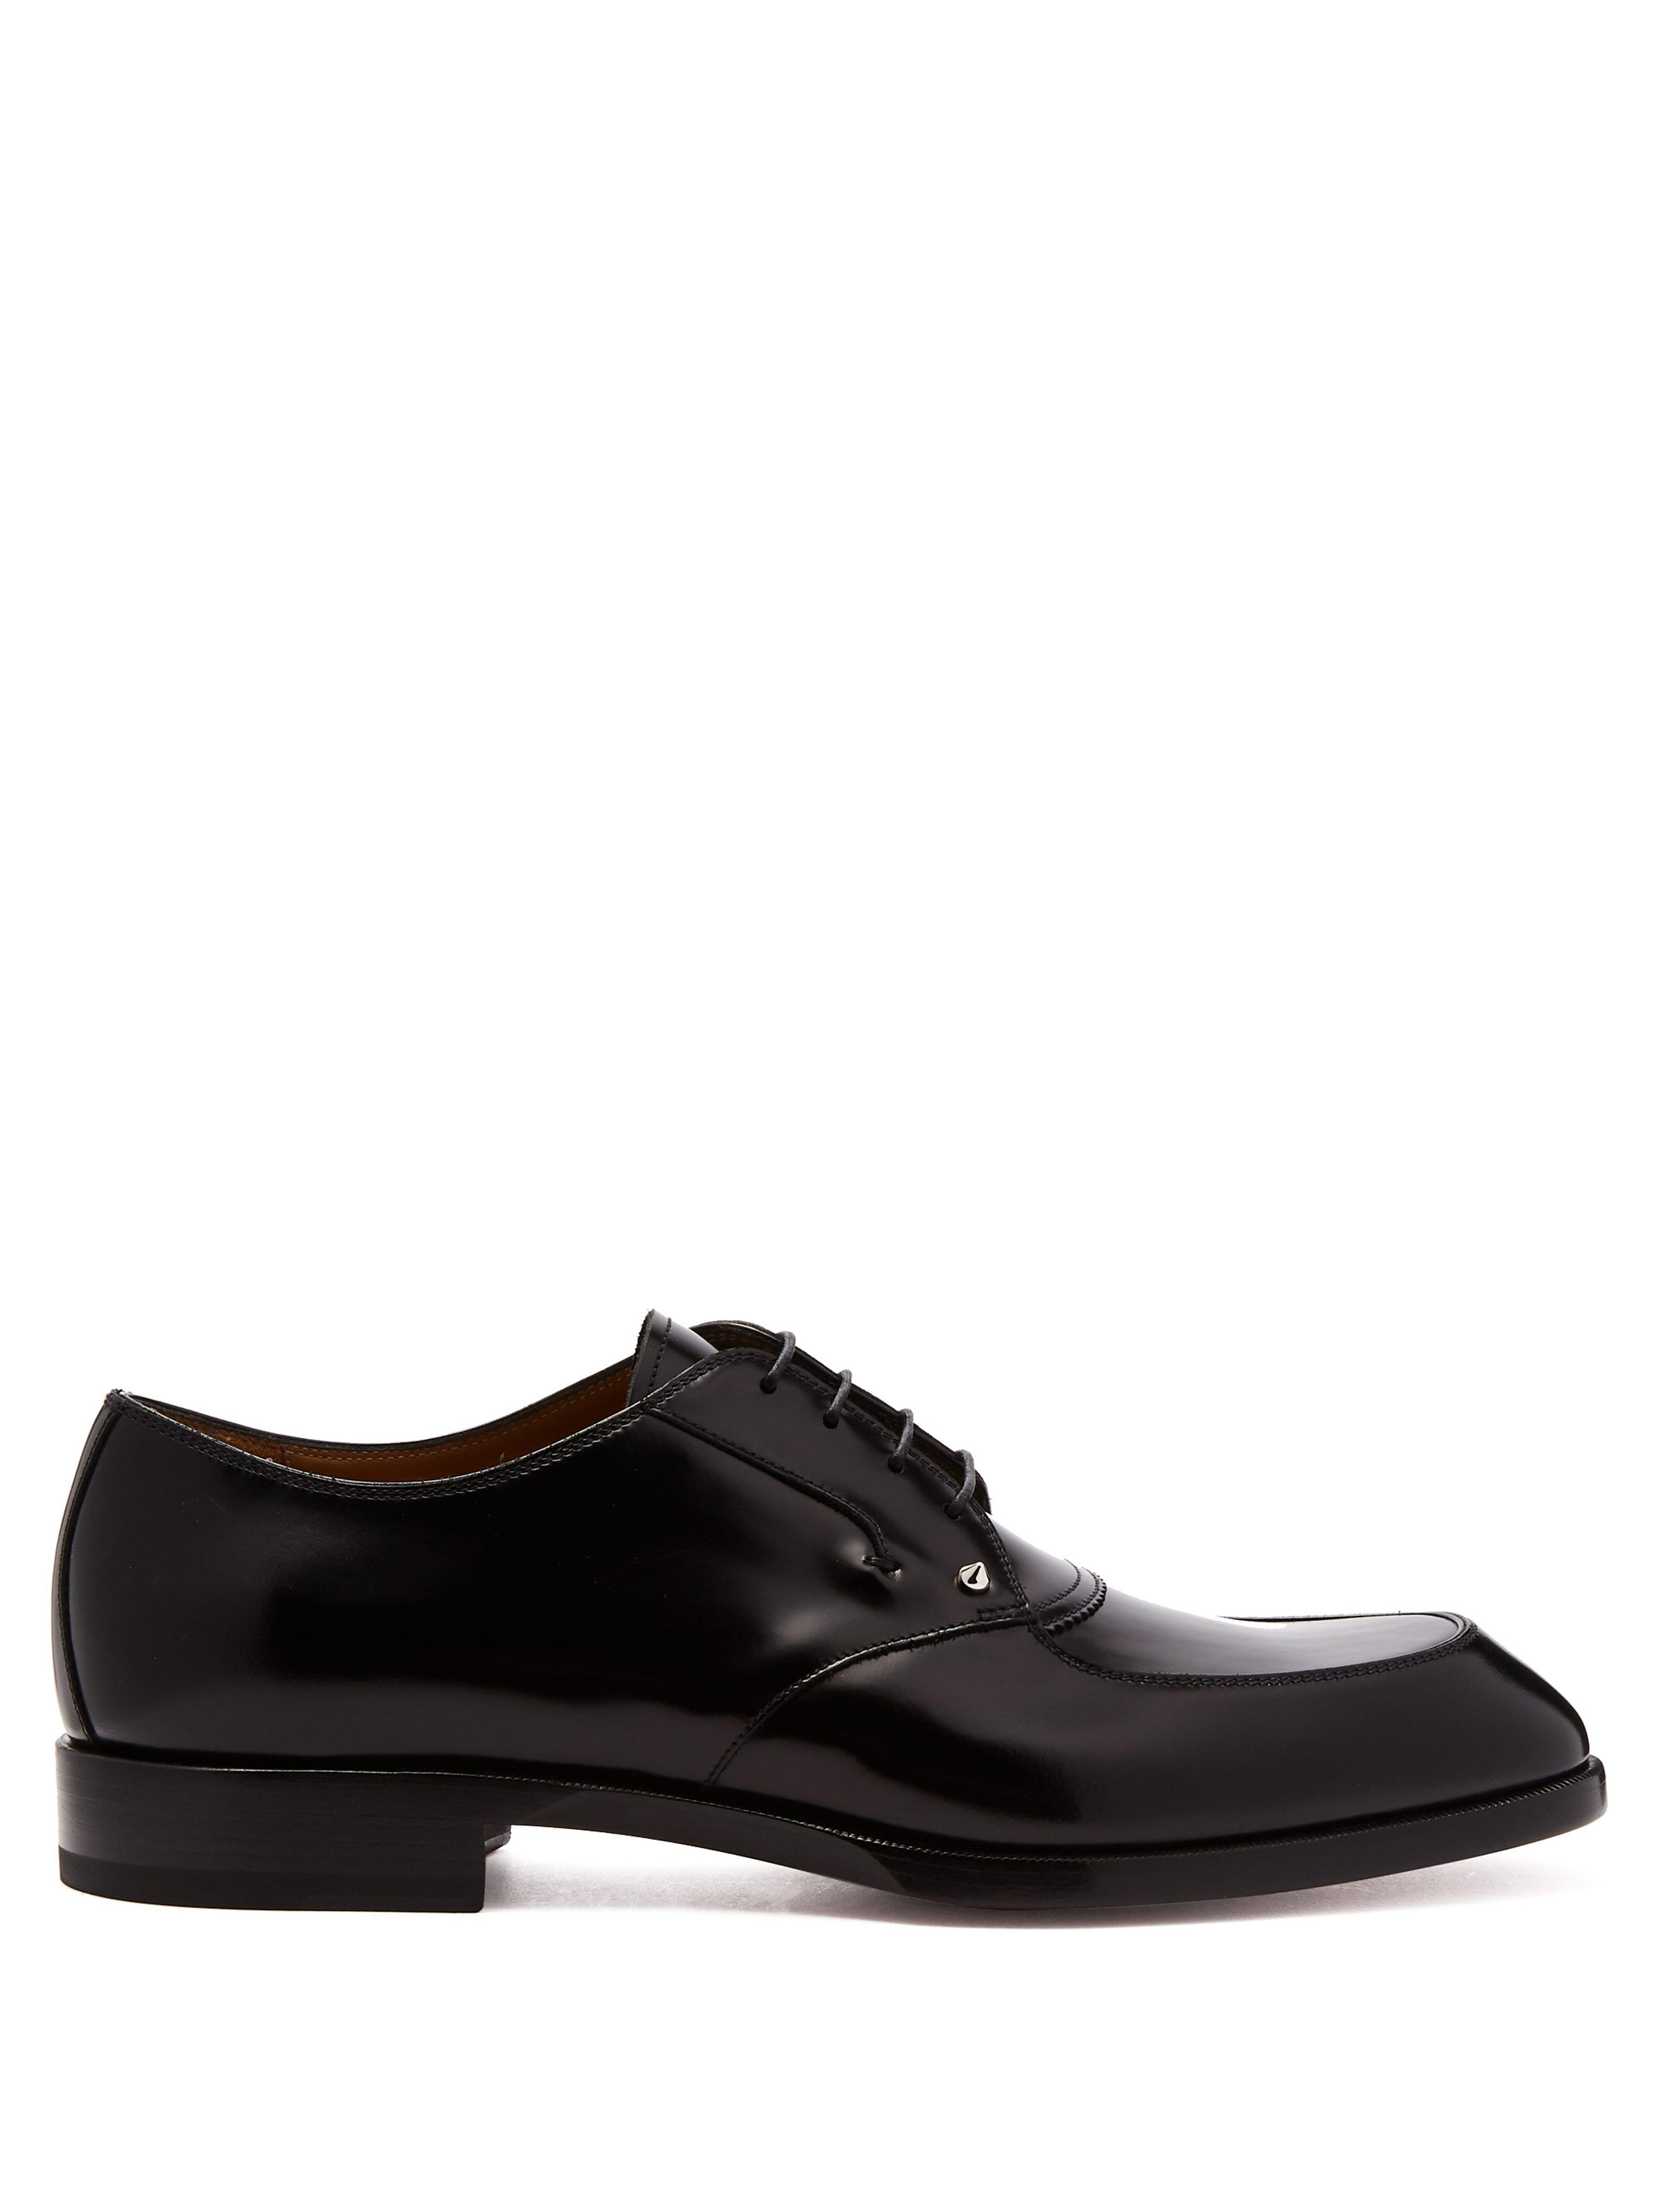 0c8968d7b316 Christian Louboutin Thomas Iii Leather Oxford Shoes in Black for Men ...